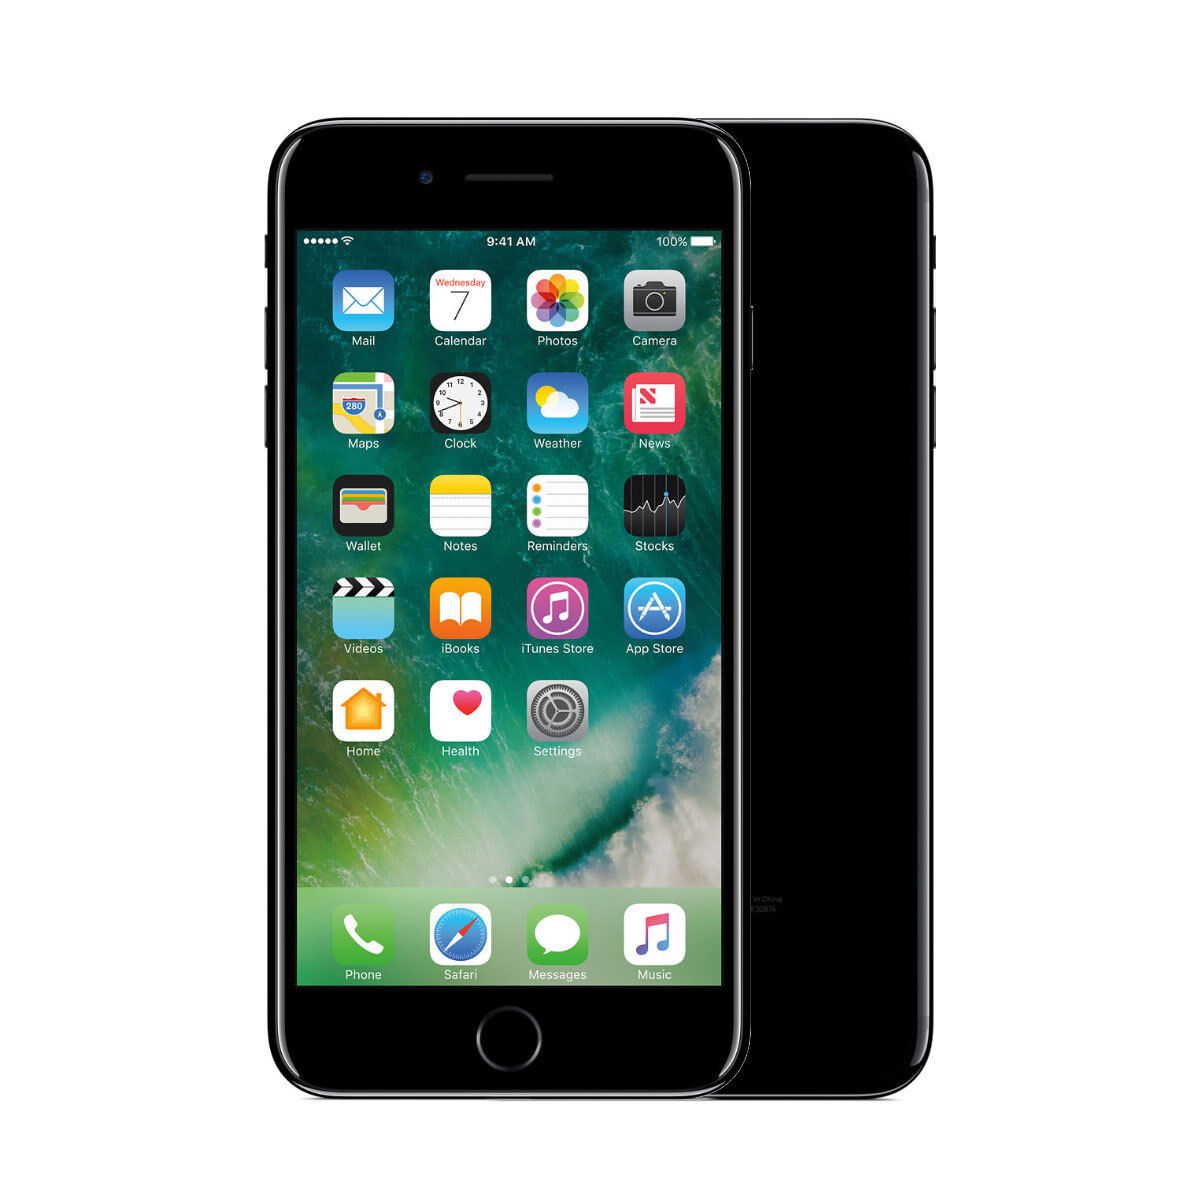 Apple iPhone 7 Plus 32GB Factory Unlocked 4G LTE iOS WiFi Smartphone